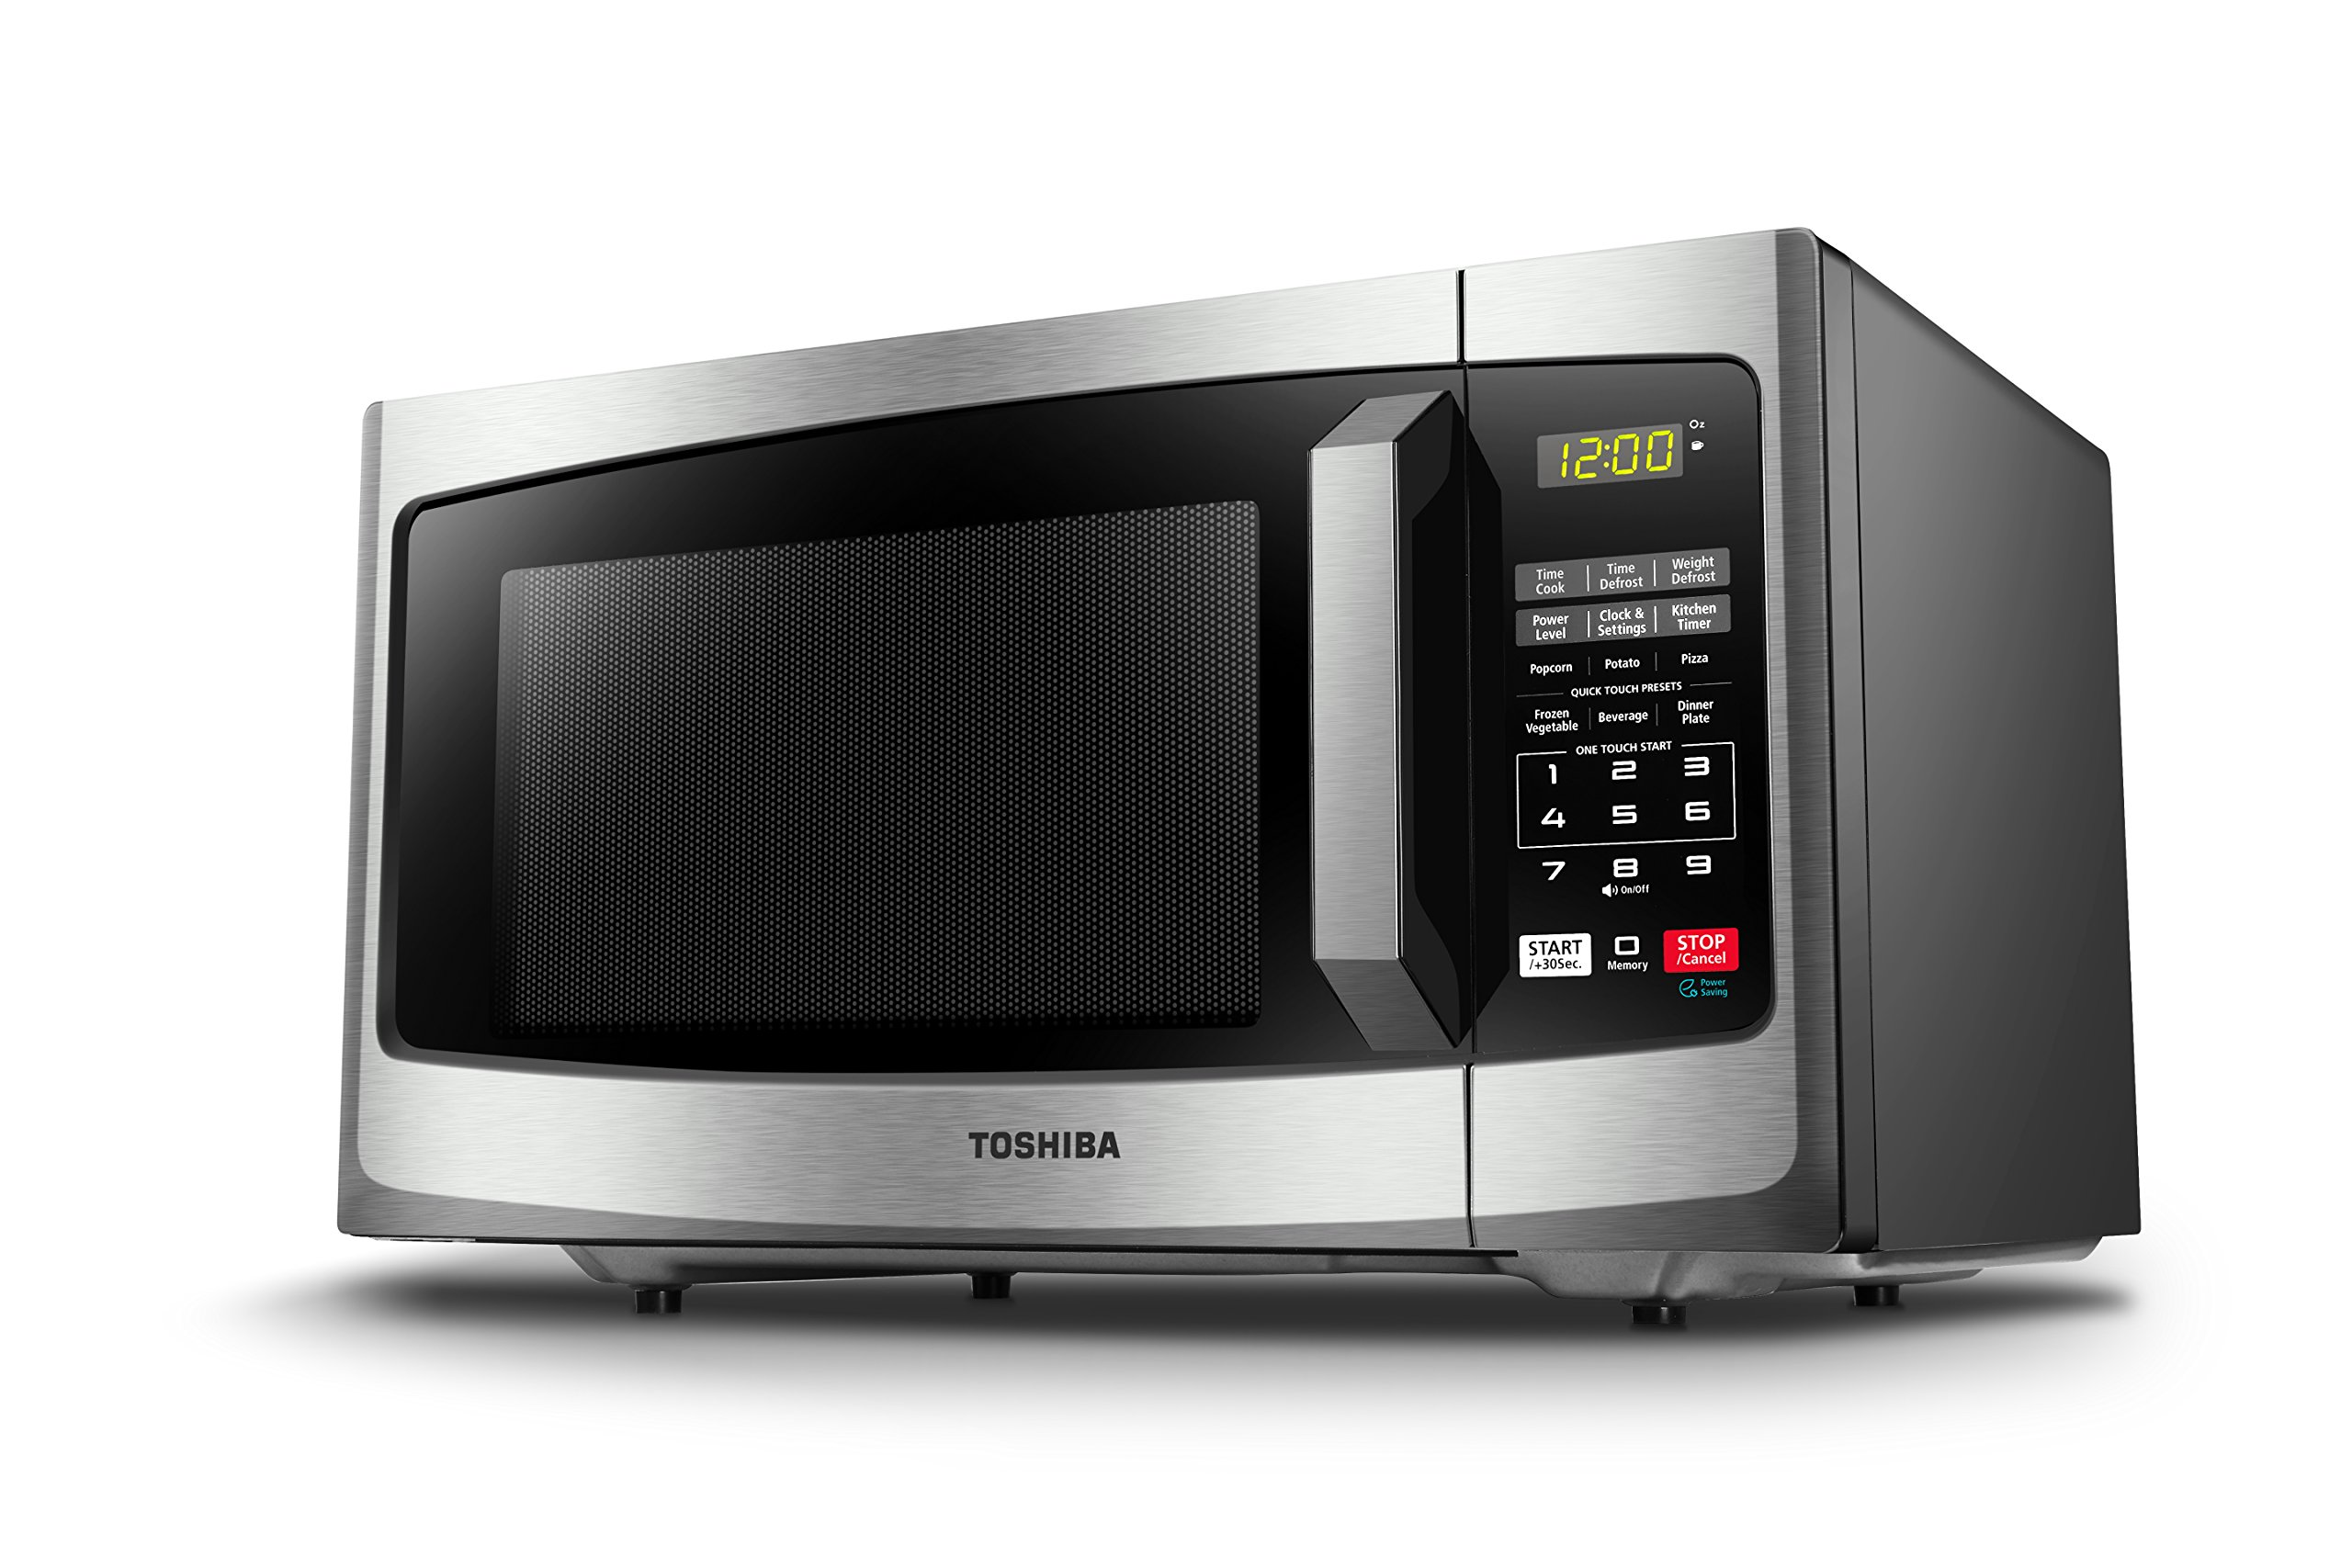 Toshiba EM925A5A-SS Microwave Oven with Sound On/Off ECO Mode and LED Lighting 0.9 cu. ft. Stainless Steel by Toshiba (Image #5)